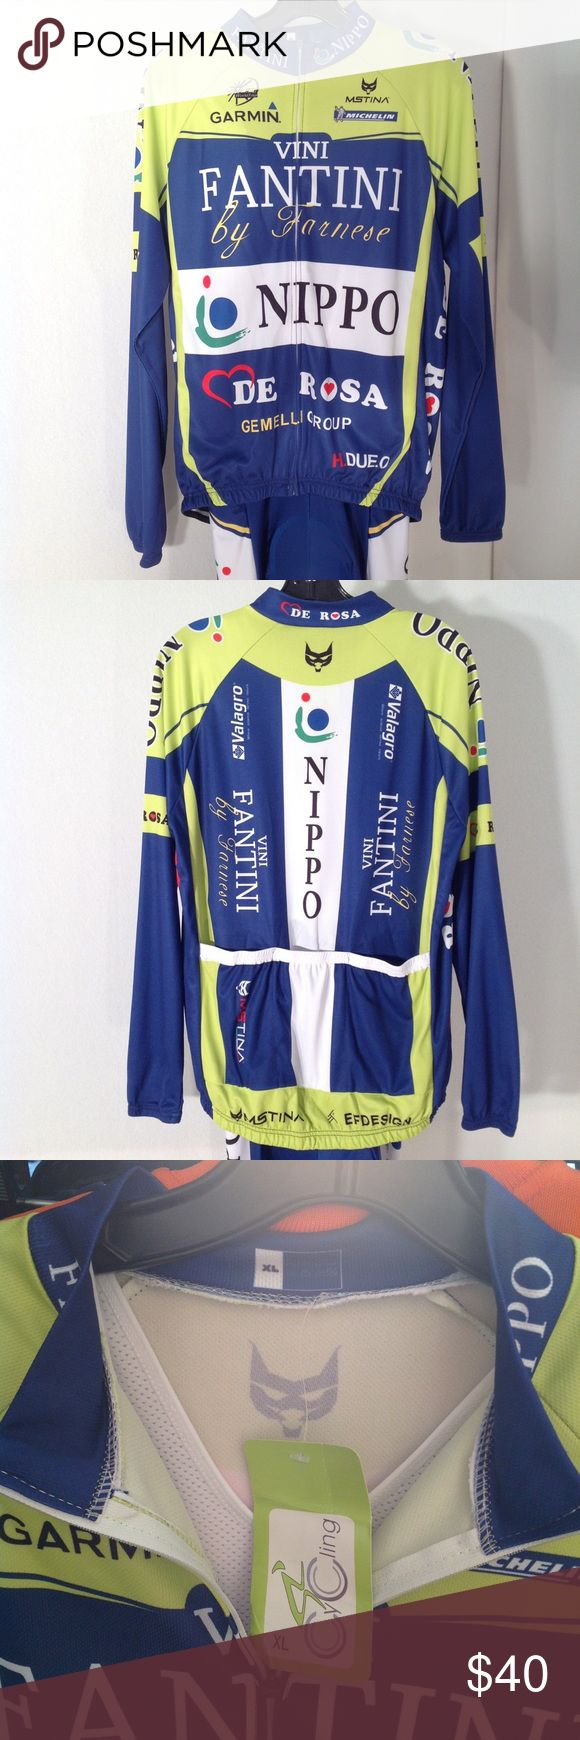 Vini Fantini cycling outfit by Farnese This 2-piece outfit is in excellent pre-owned condition with no staining or damage. Pants and tank top are one piece with adjoining jersey. Vini Fantini by Farnese Other